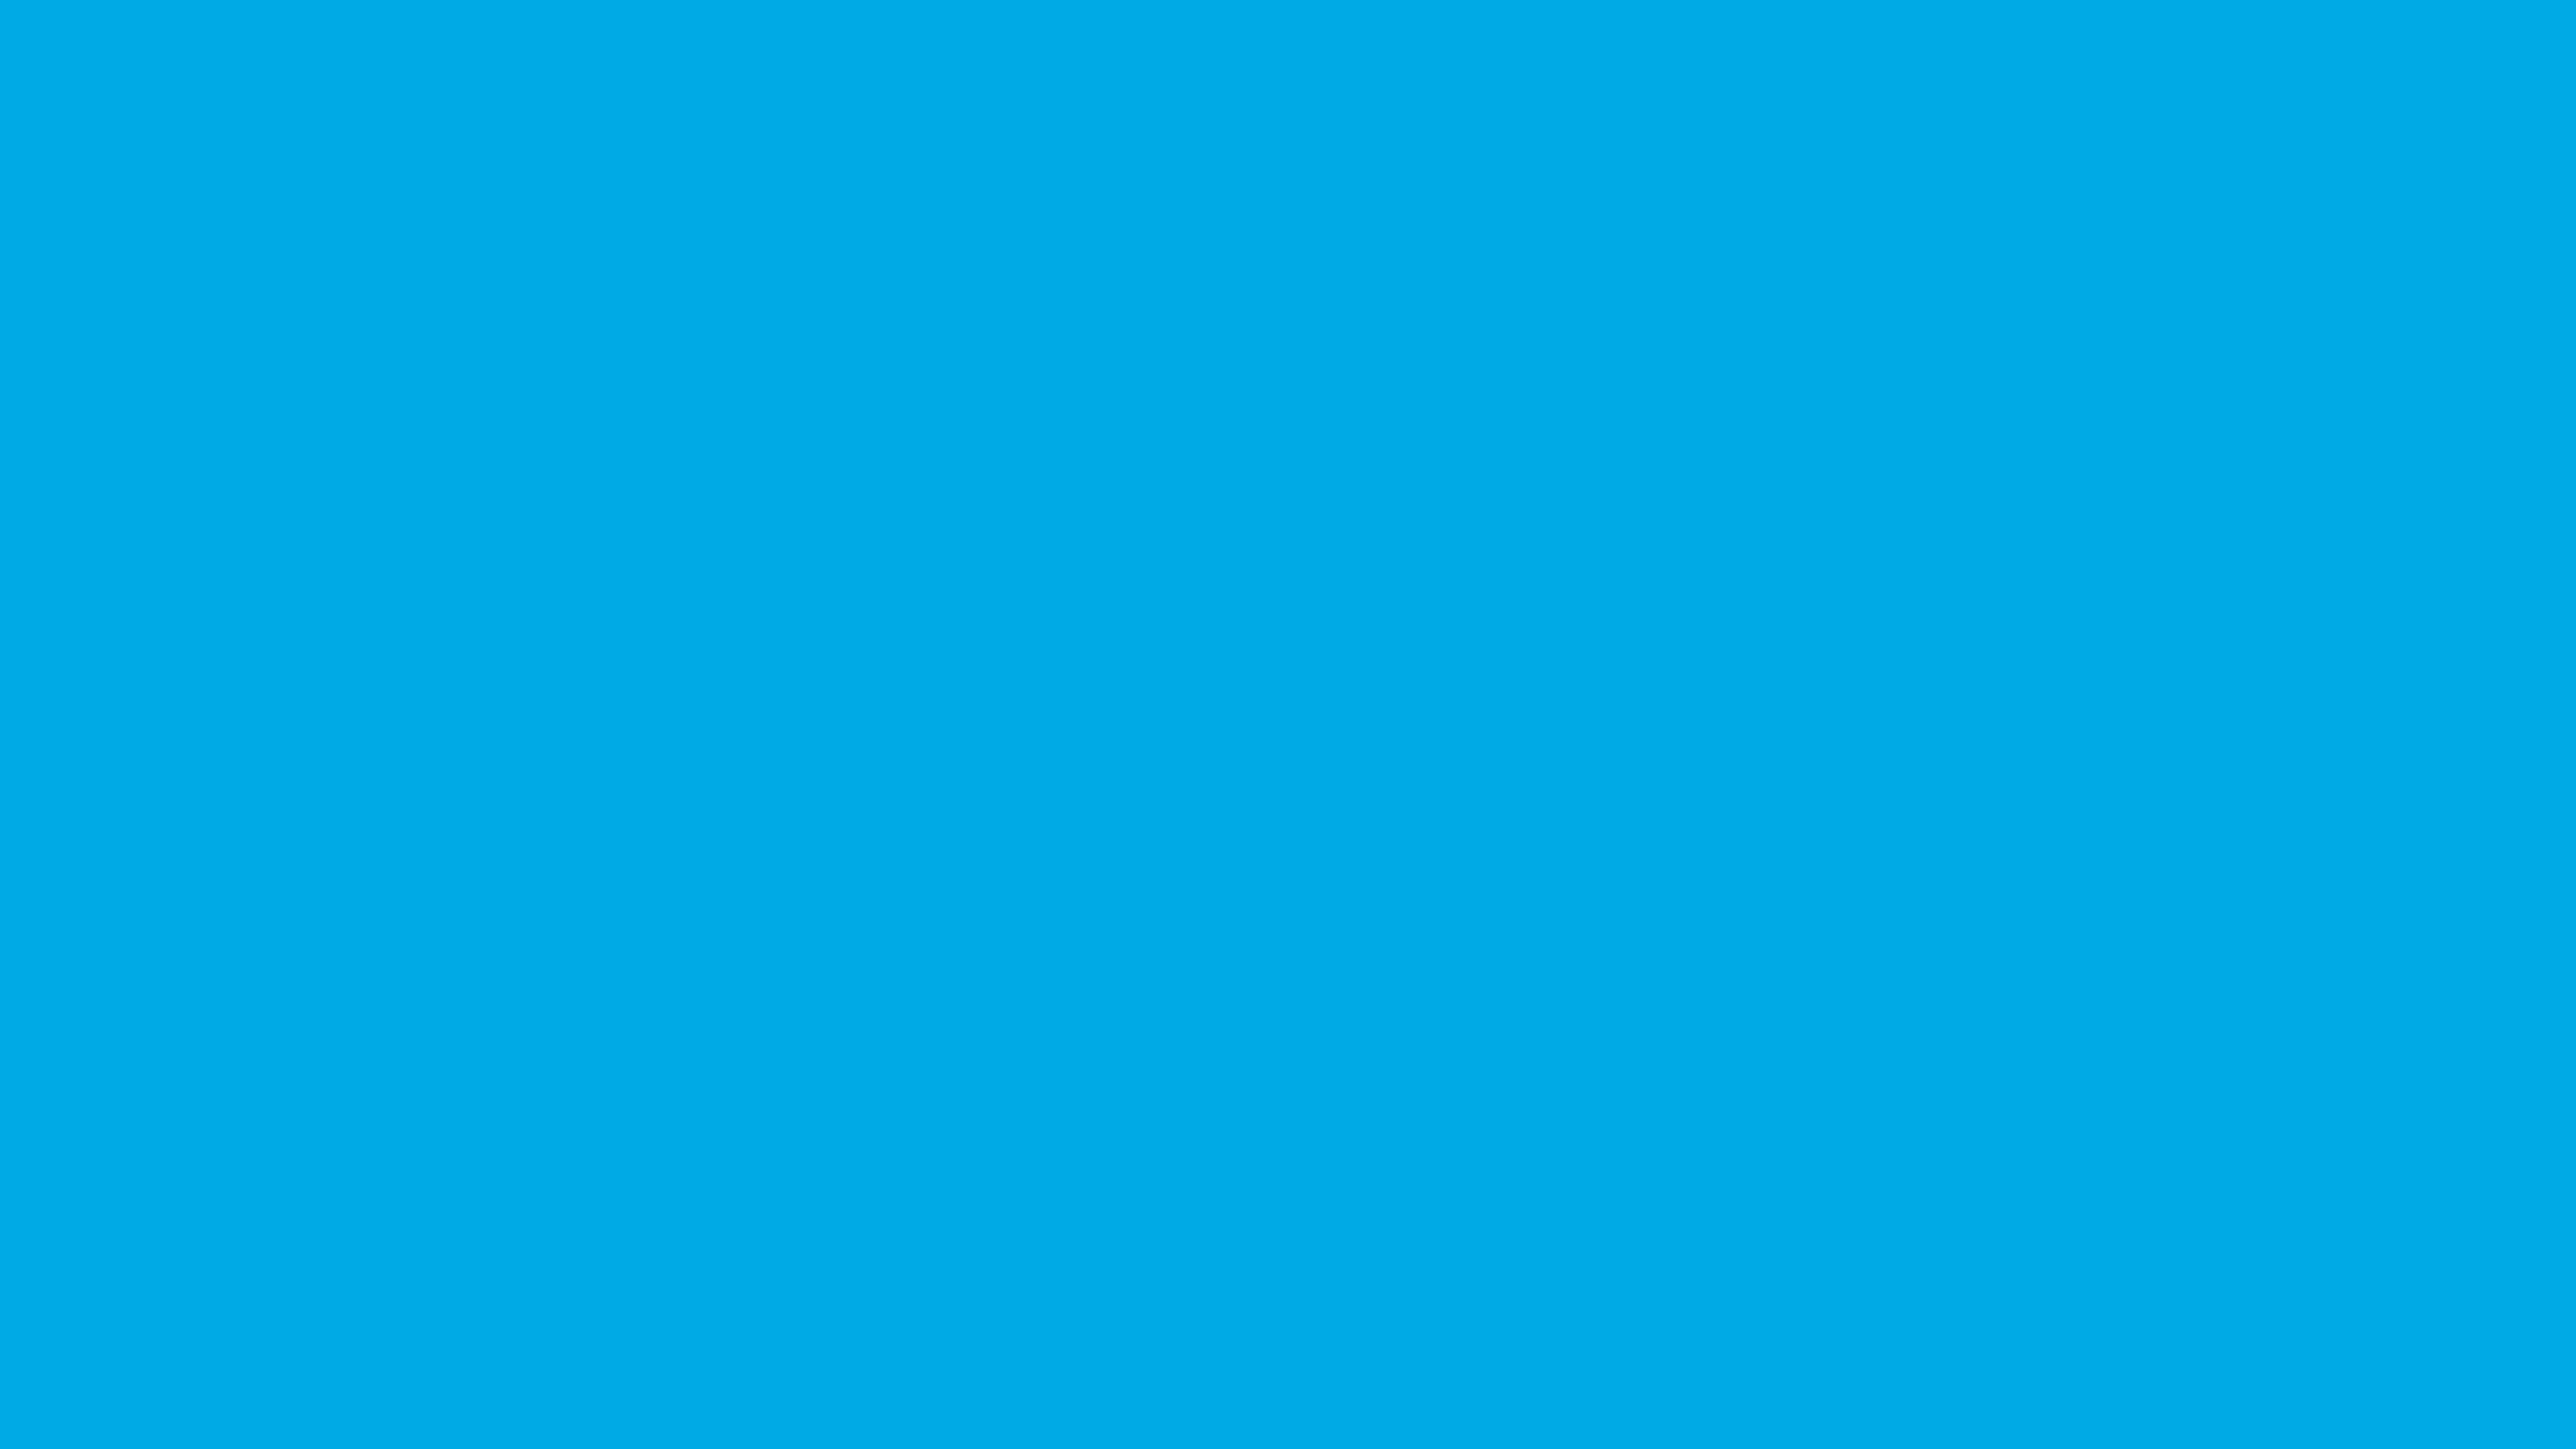 3840x2160 Spanish Sky Blue Solid Color Background